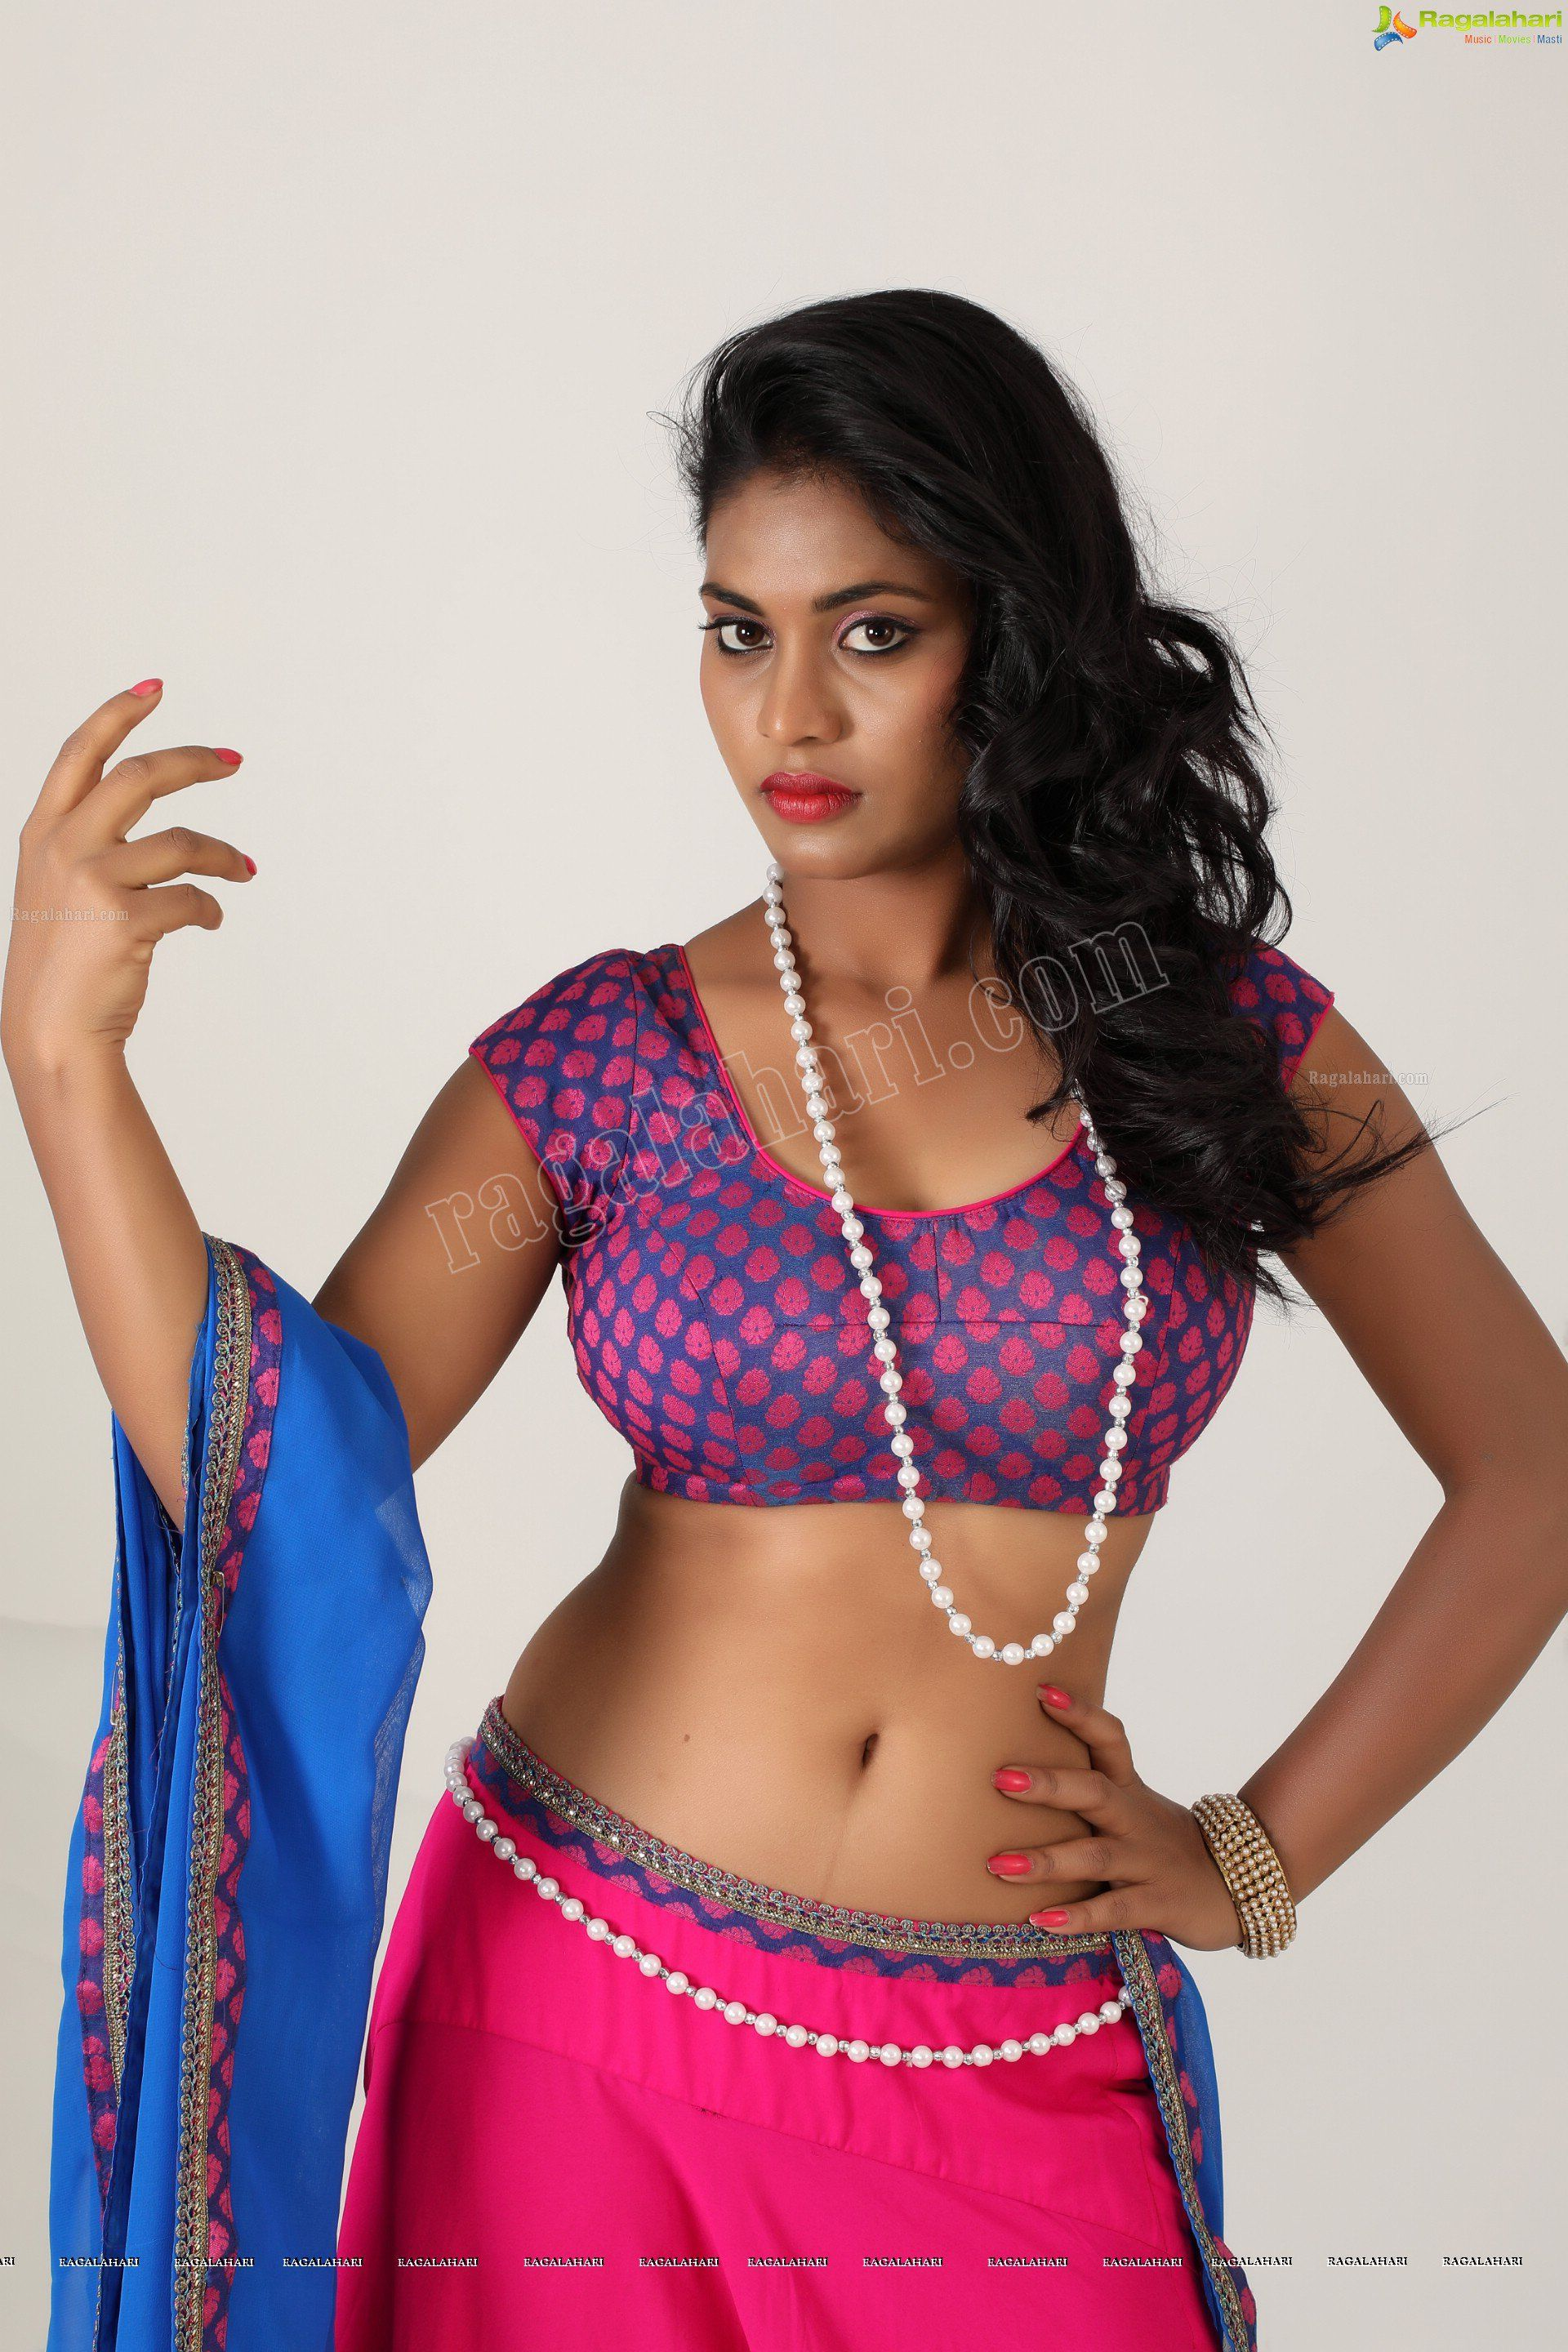 girls Indian saree hot sexy